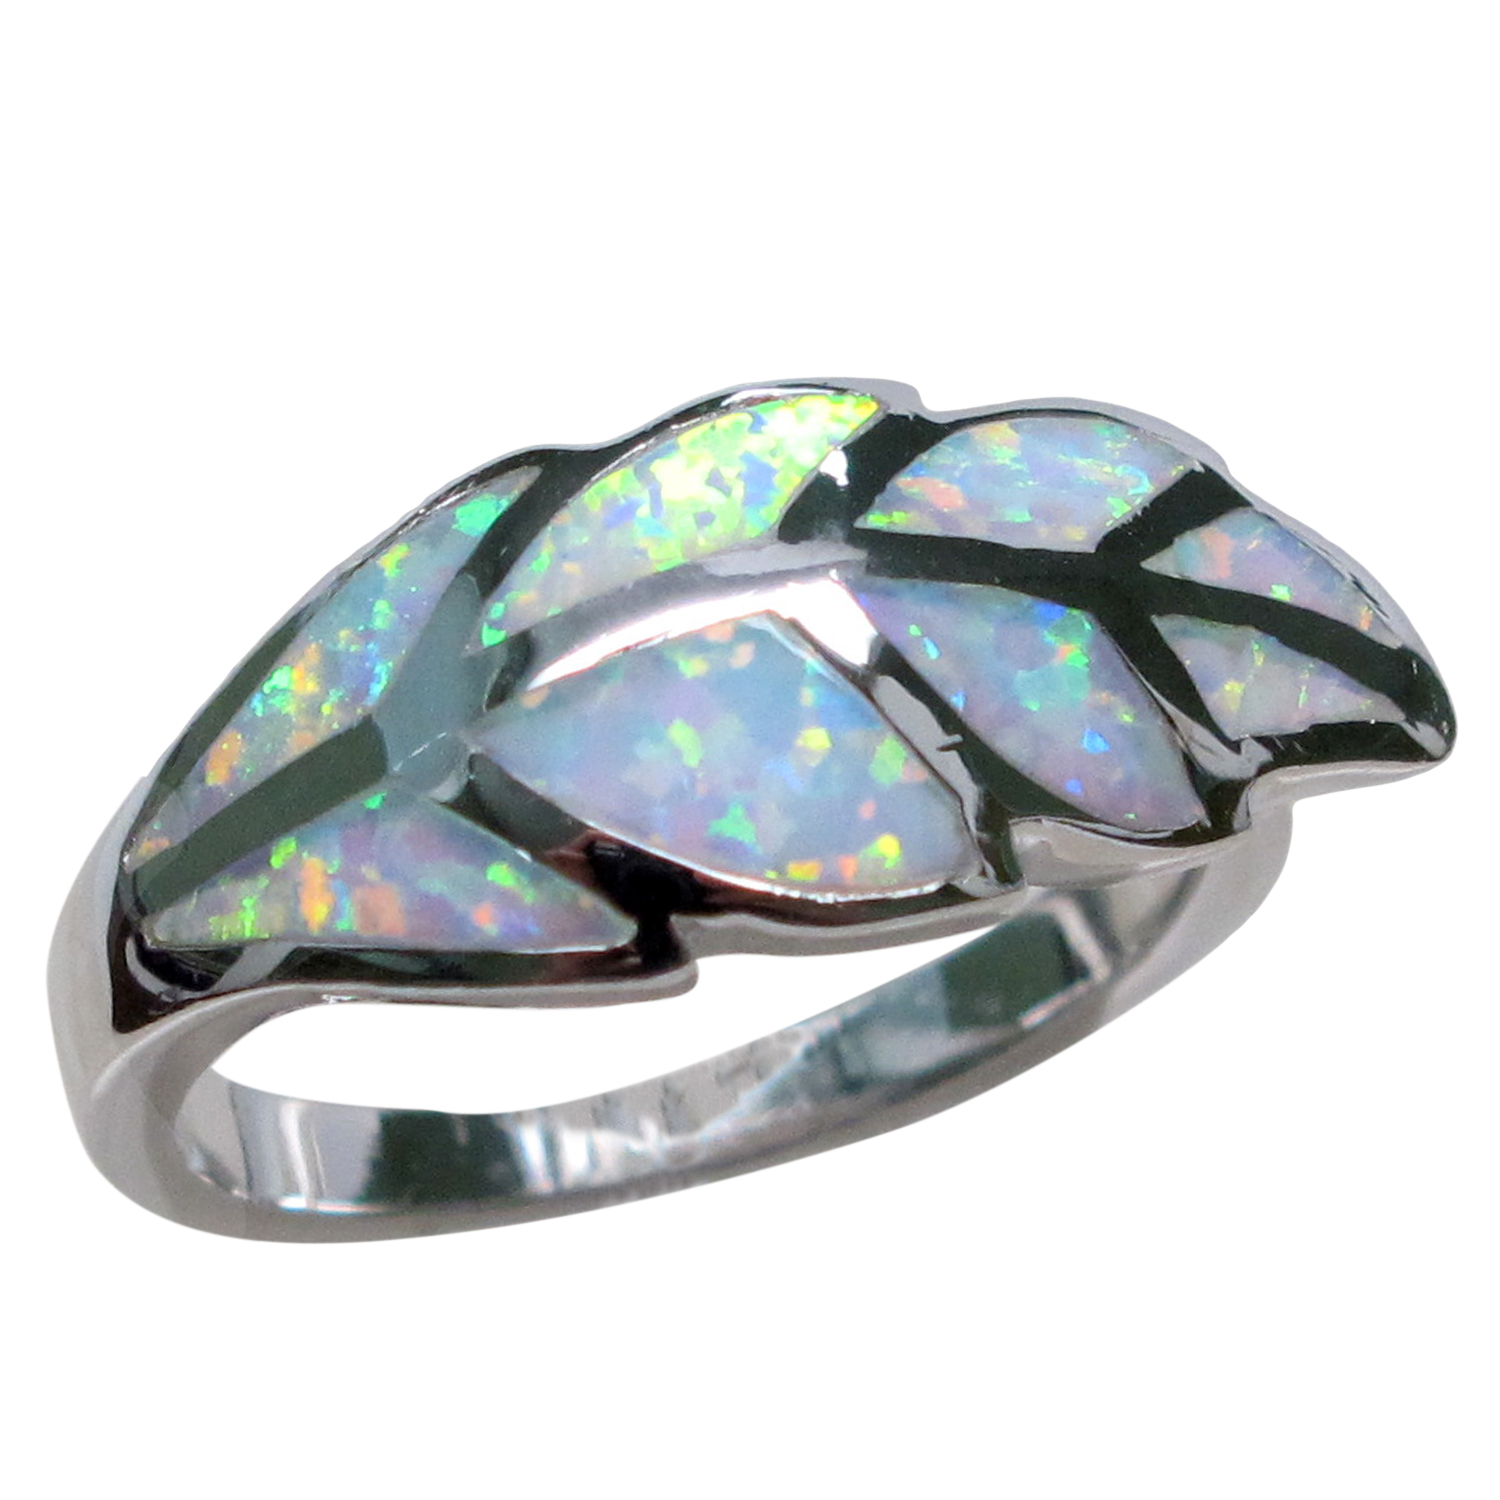 awesome white opal 925 sterling silver ring size 5 10 ebay